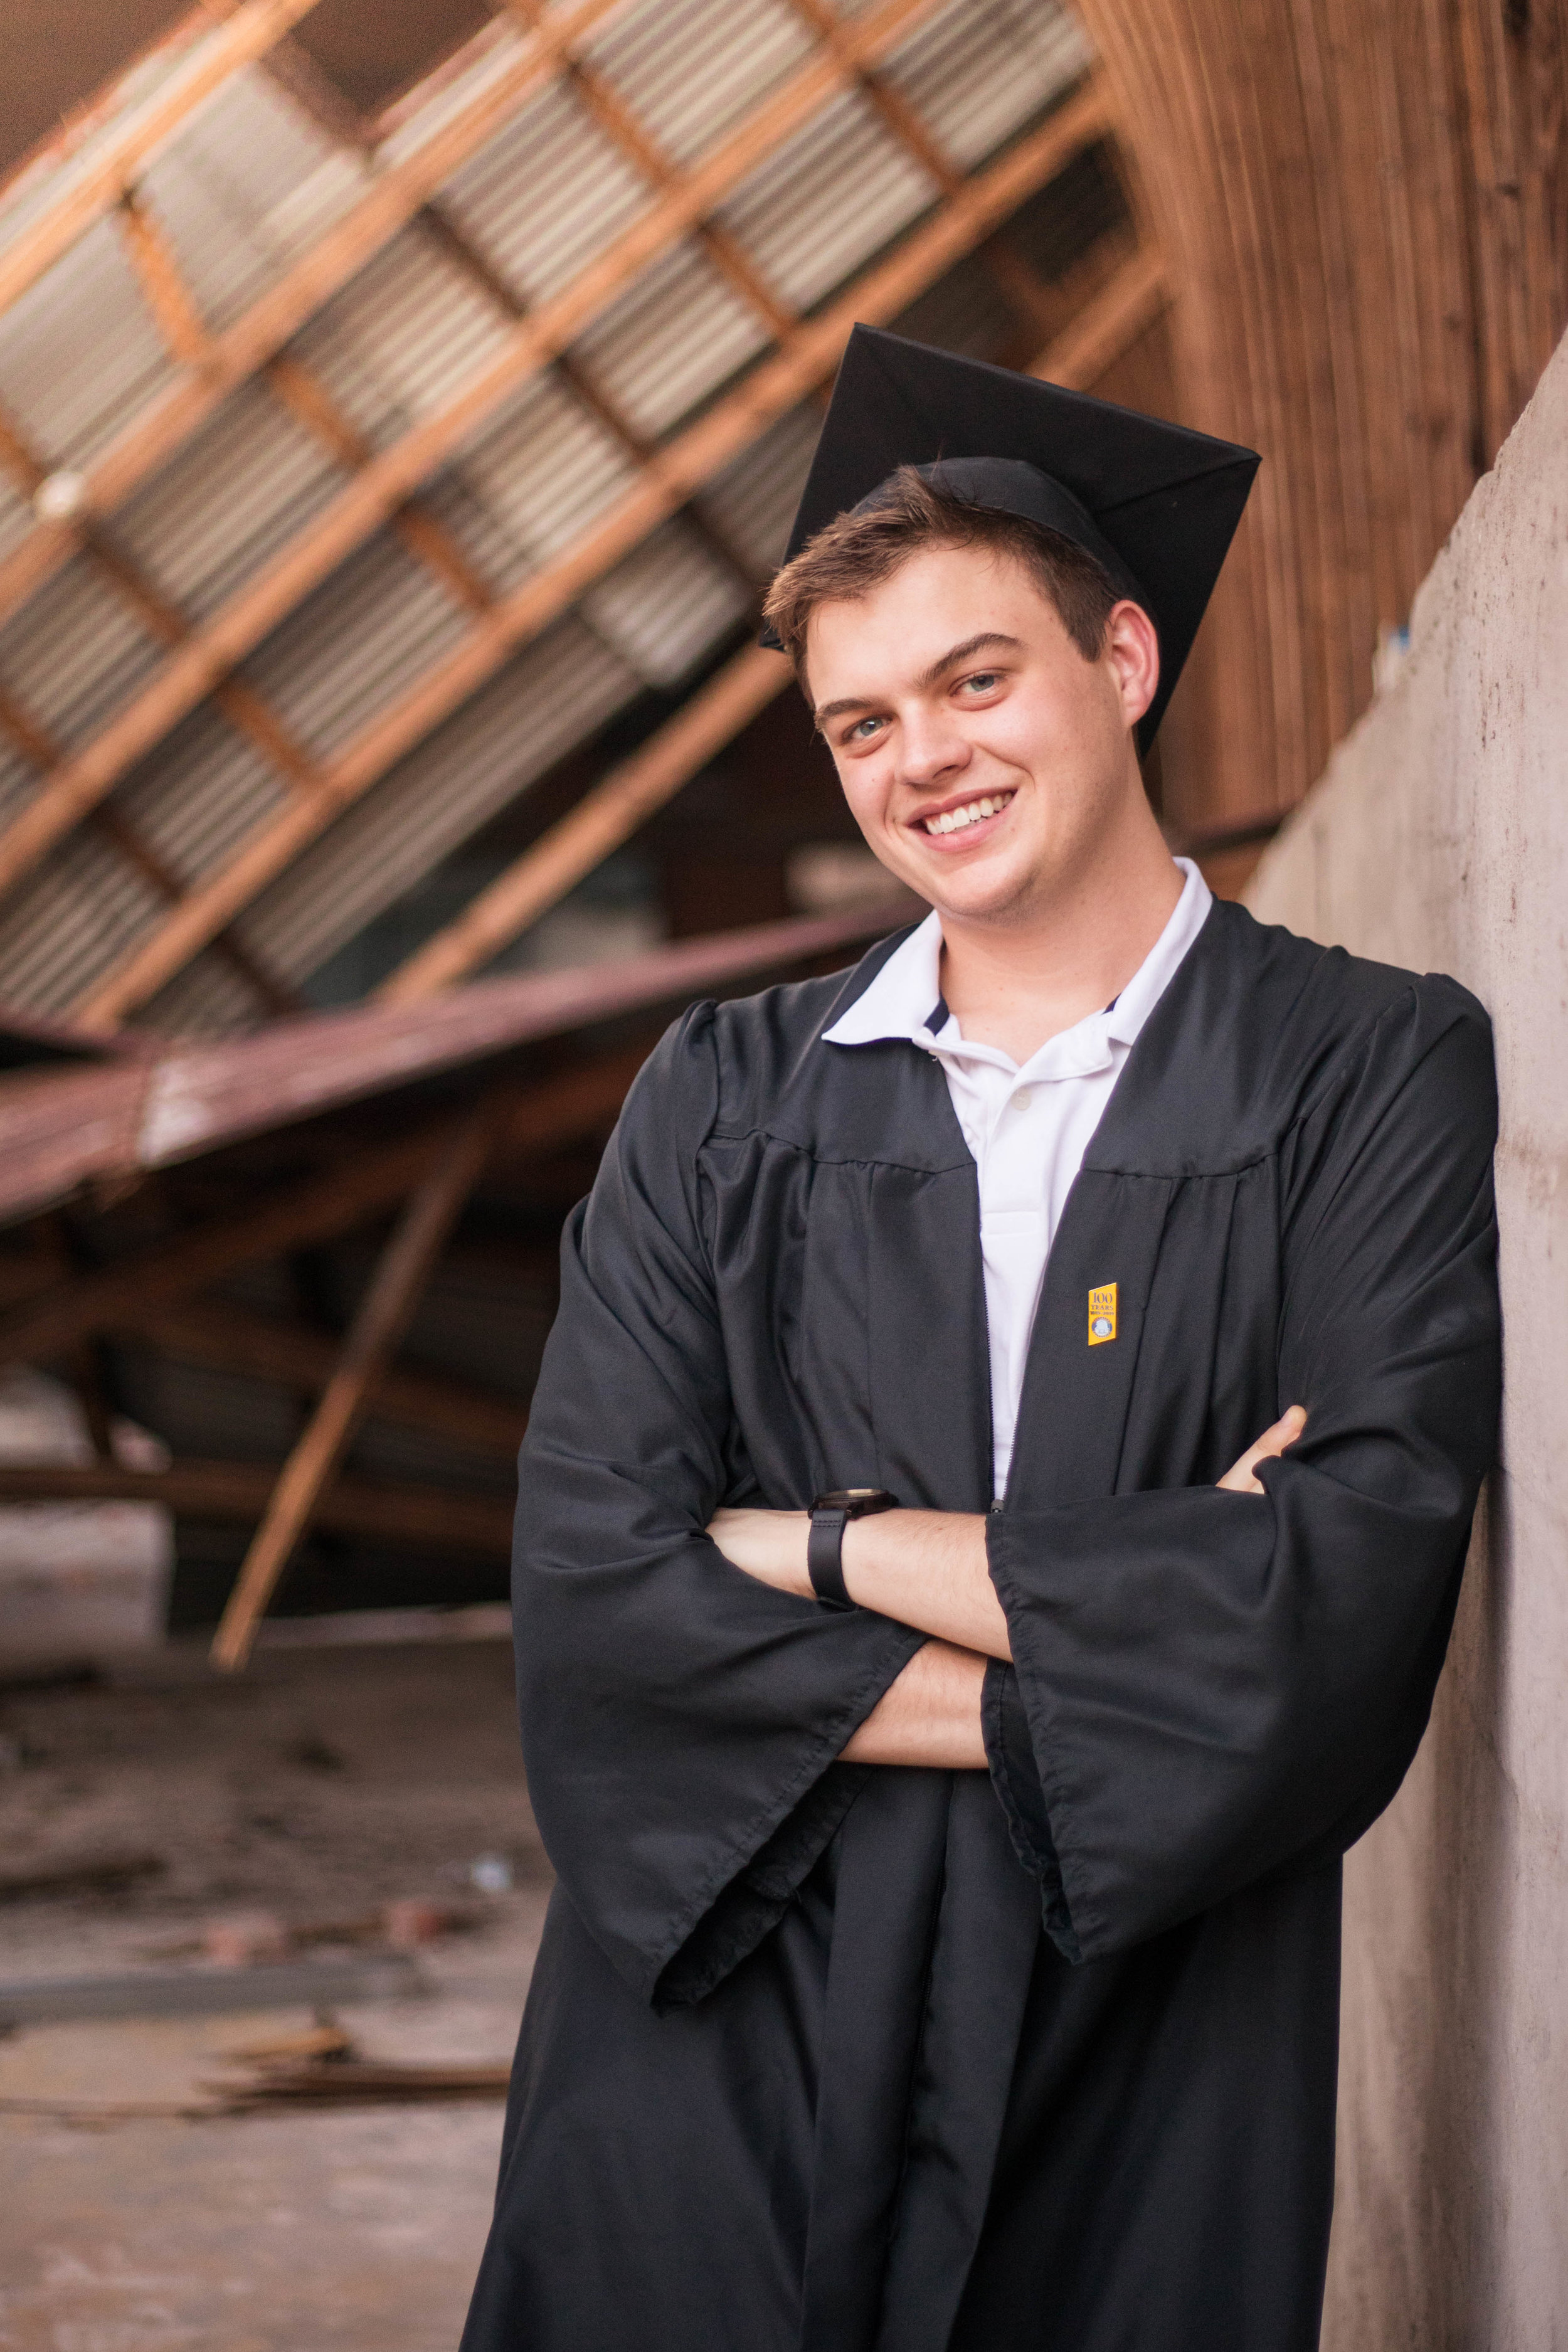 Brandon_Graduation_2019 (15 of 17).jpg